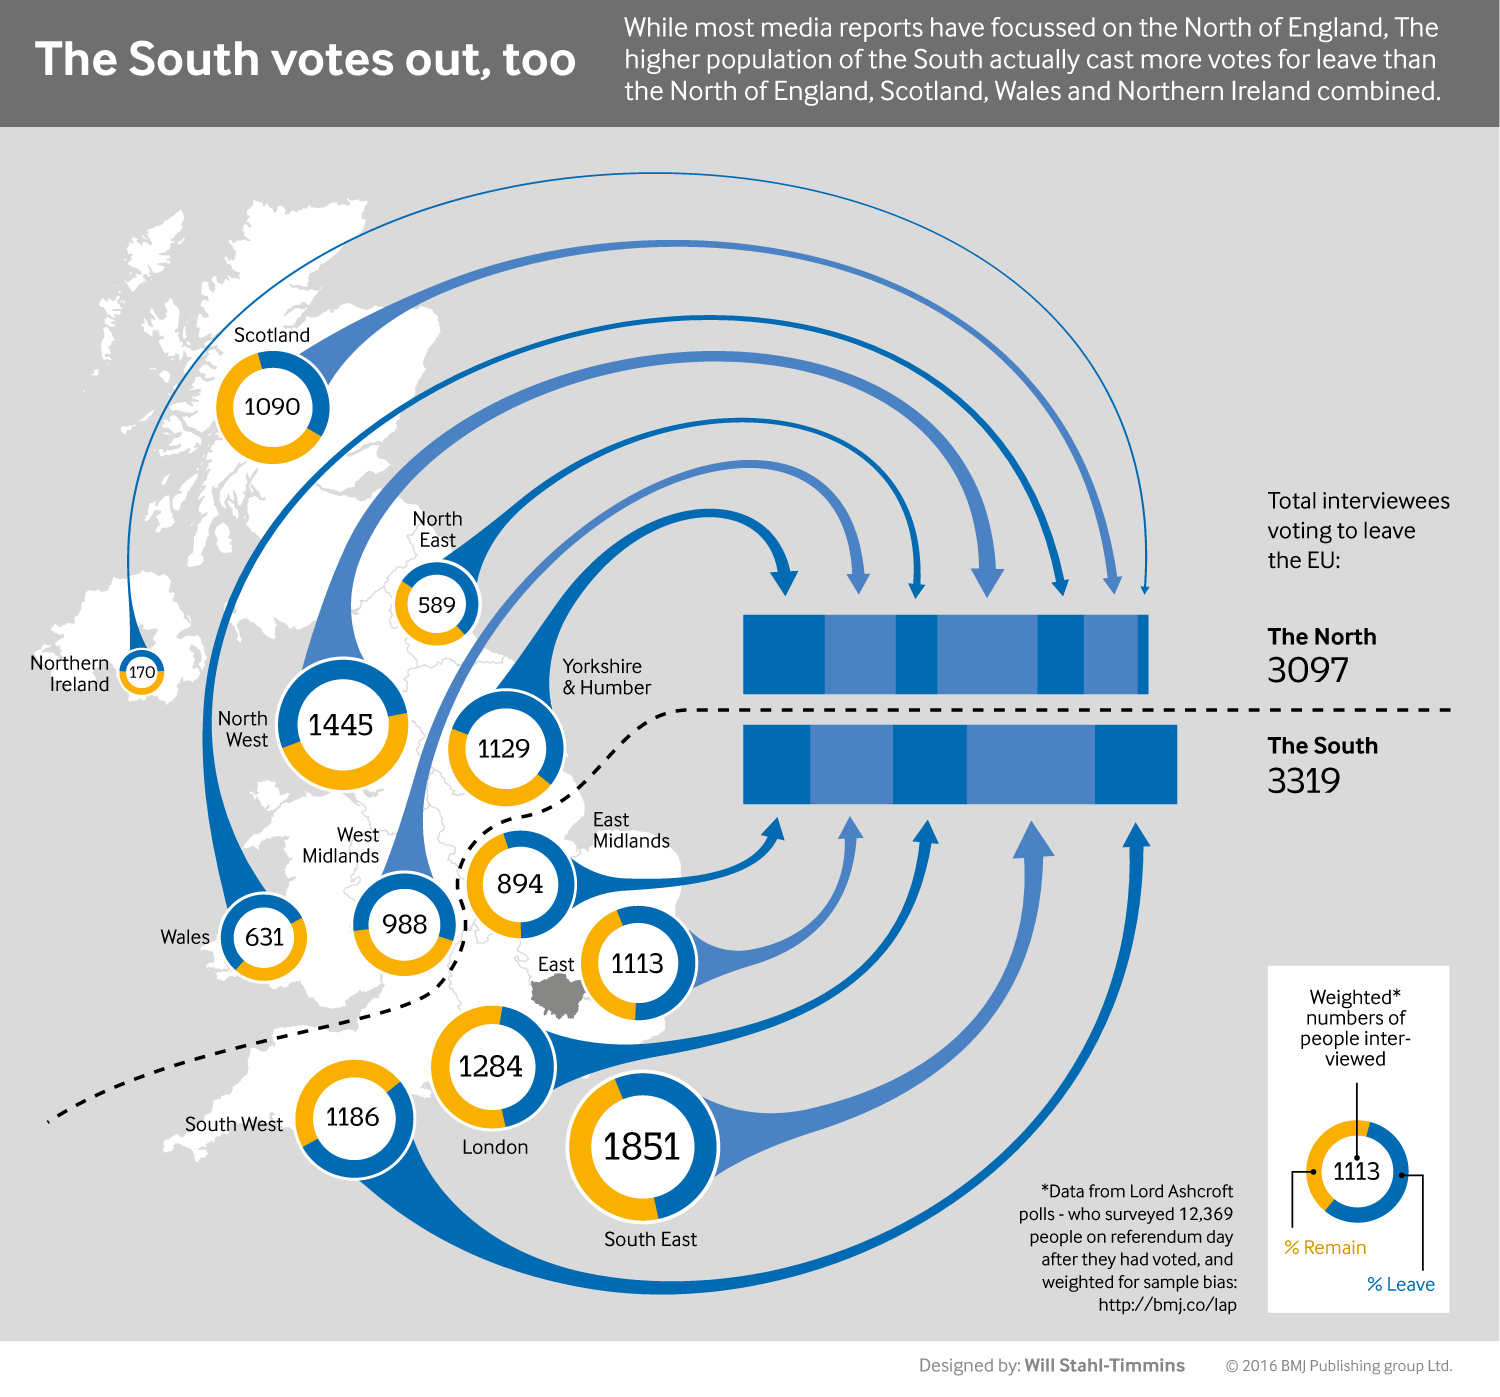 showing that more people from the south of the uk voted to leave the